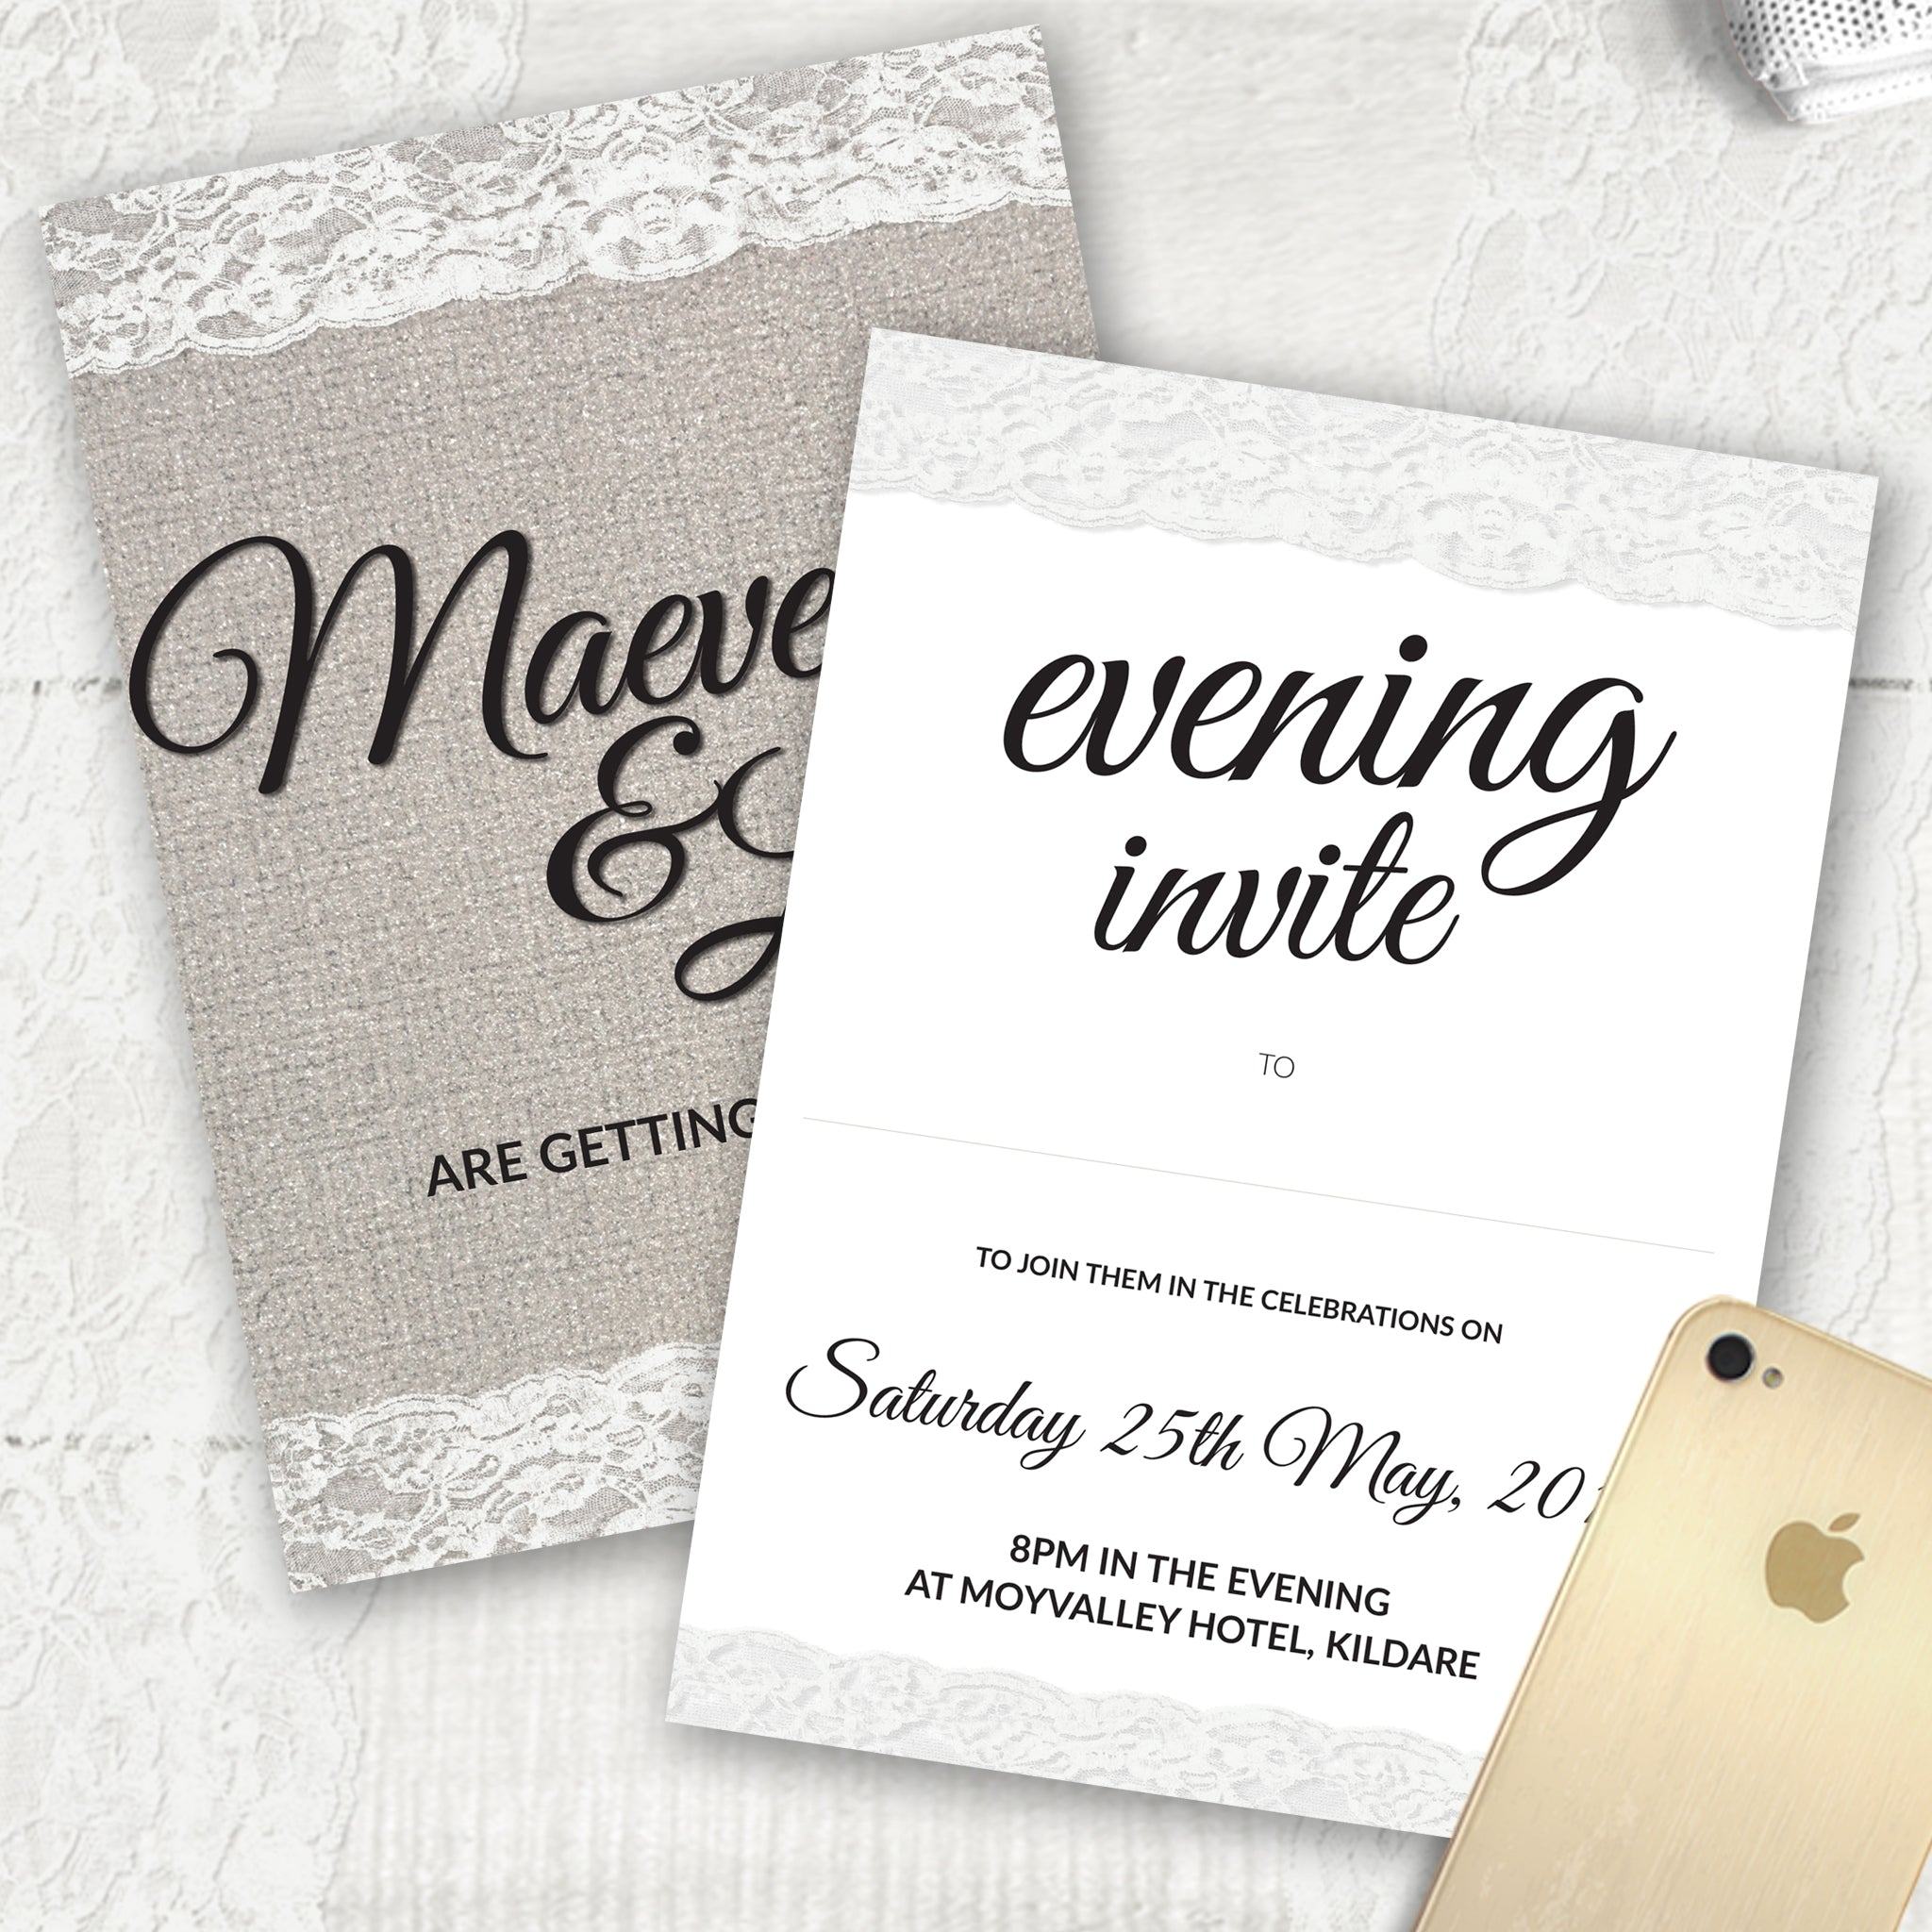 Burlap Lace - Evening Invitation